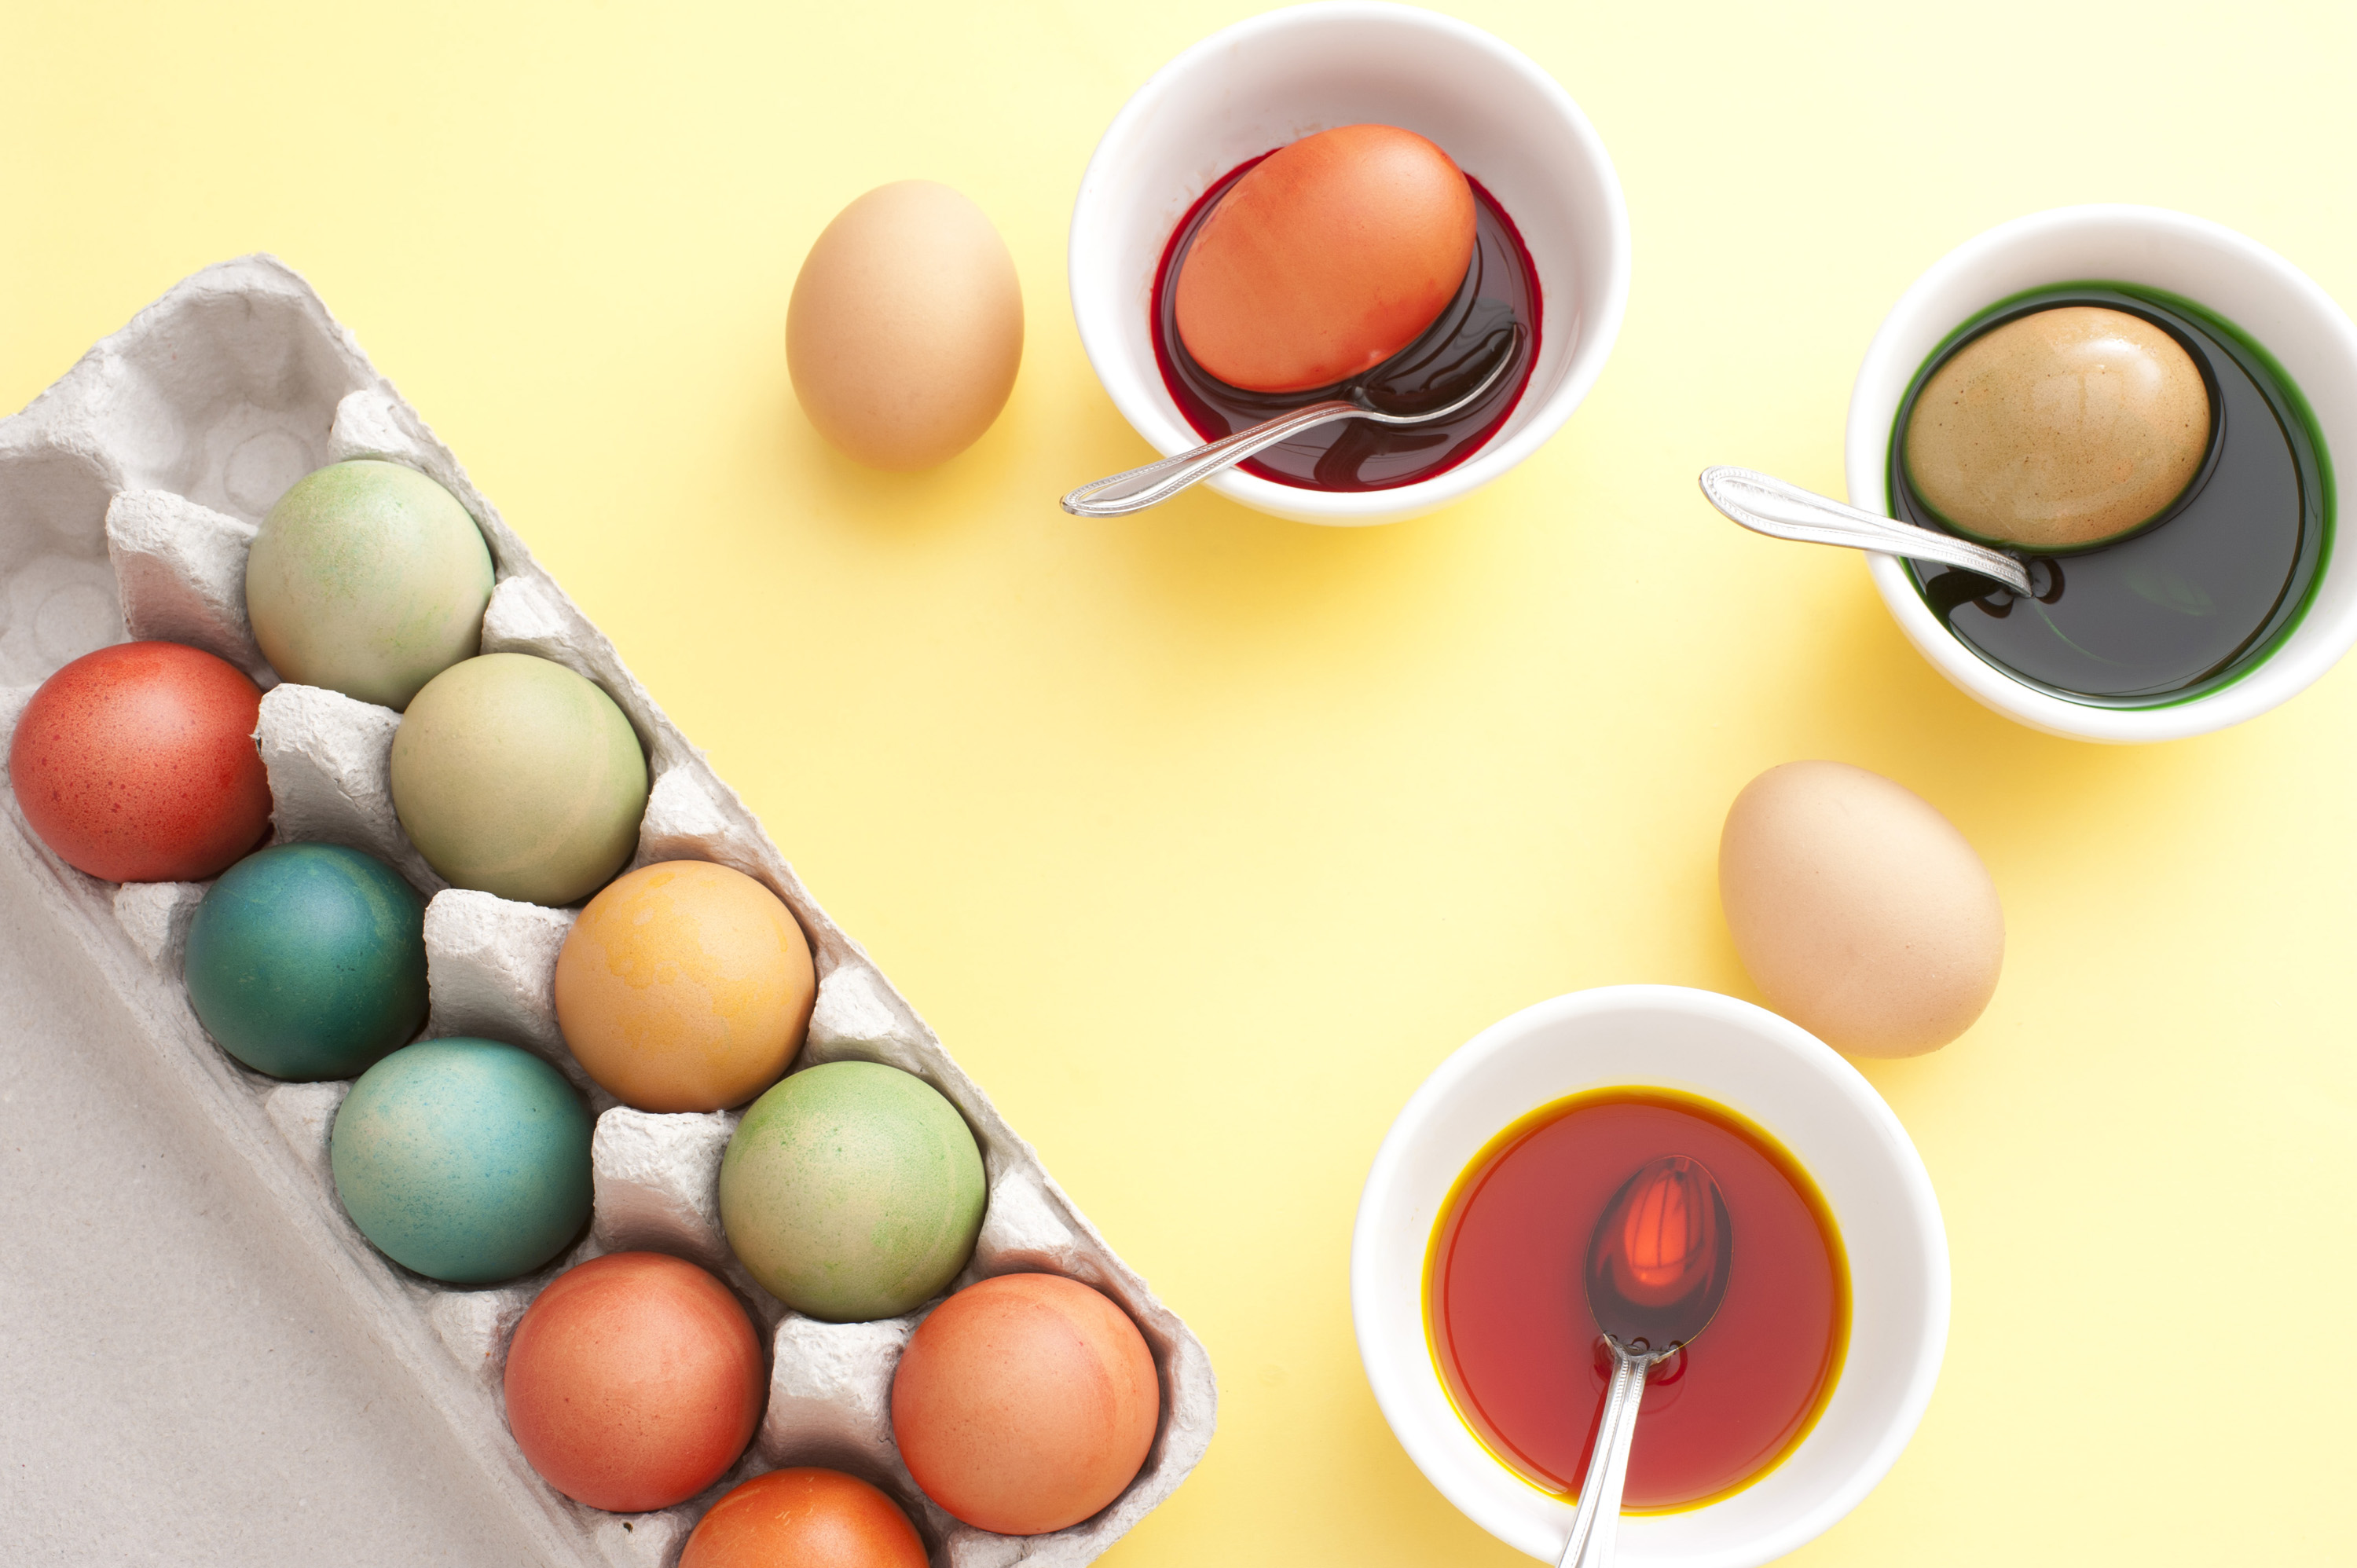 easter_egg_preparing.jpg - Childhood tradition dyeing boiled eggs for a festive Easter with an overhead view of bowls of dye and a cardboard box full of dyed completed eggs on a yellow background